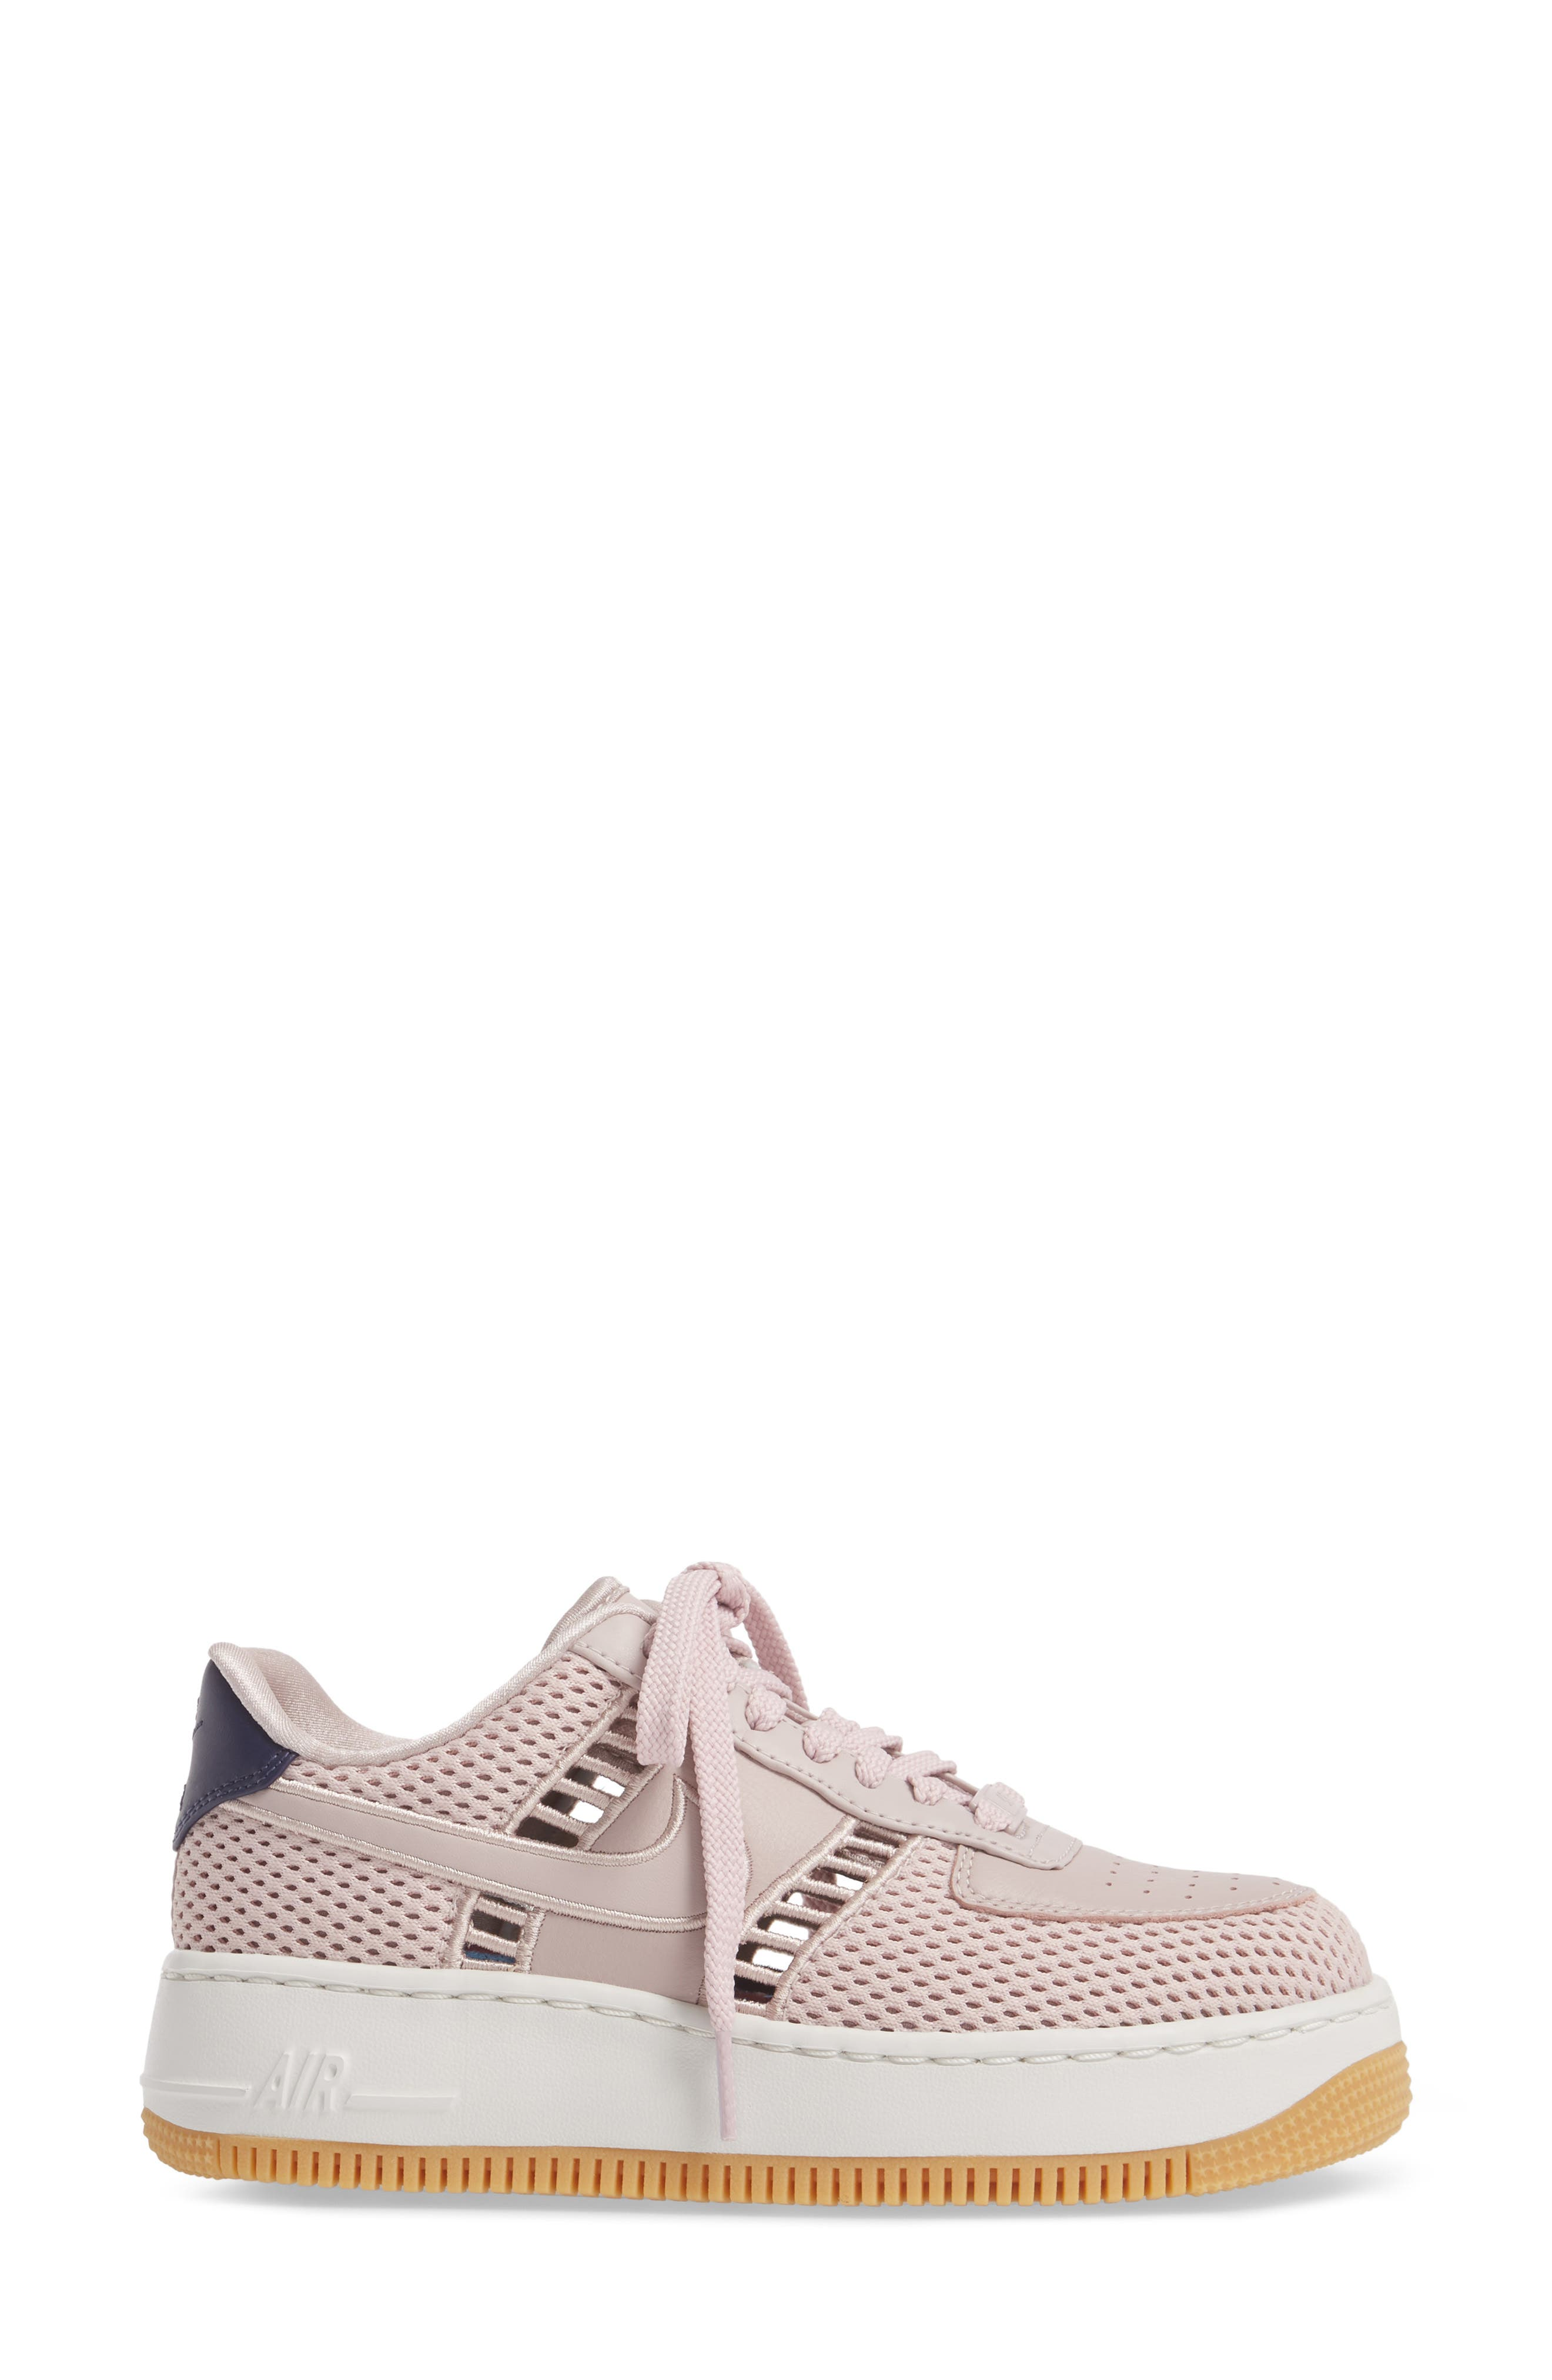 Air Force 1 Upstep SI Mesh Sneaker,                             Alternate thumbnail 3, color,                             Particle Rose/ Summit White